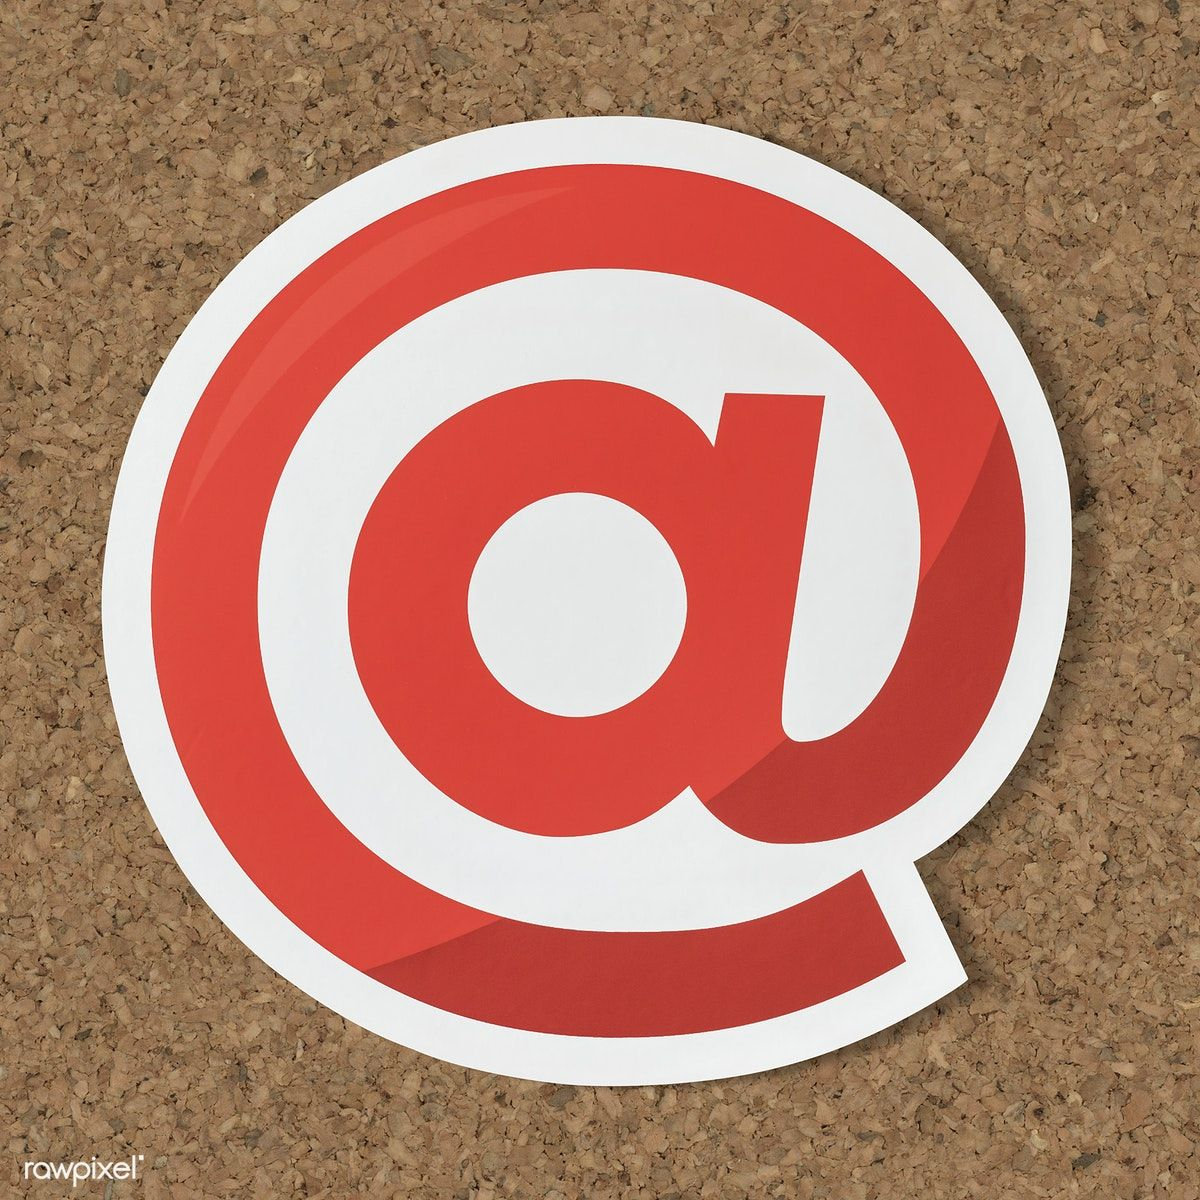 At Online Internet Symbol Icon Free Image By Rawpixel Paper